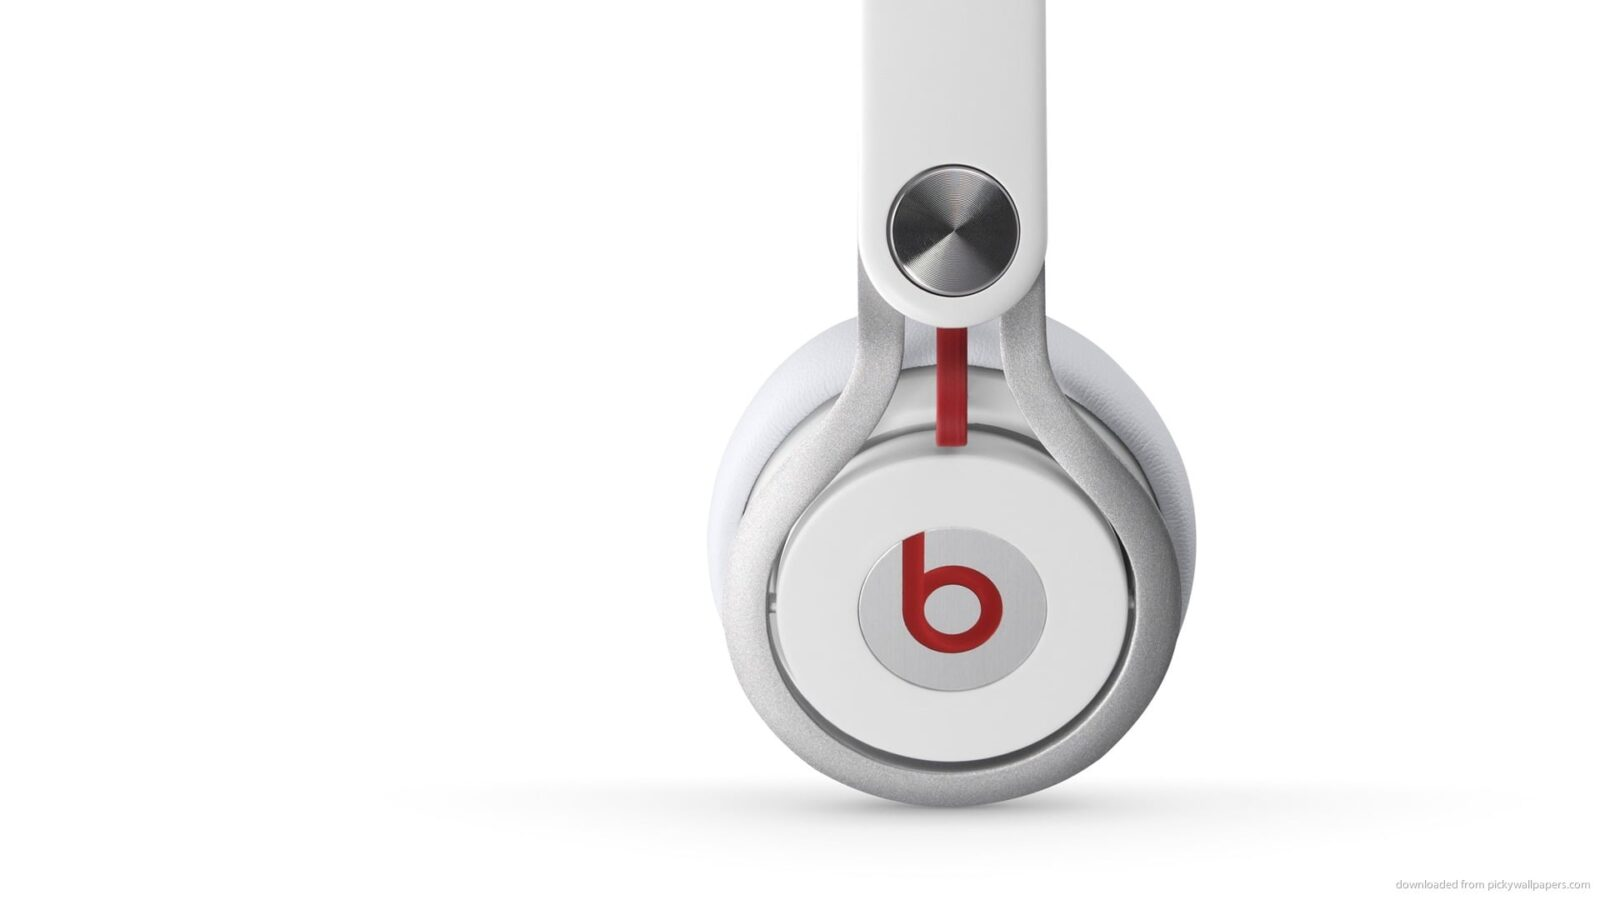 Cool Beats By Dr Dre white beats mixr photo